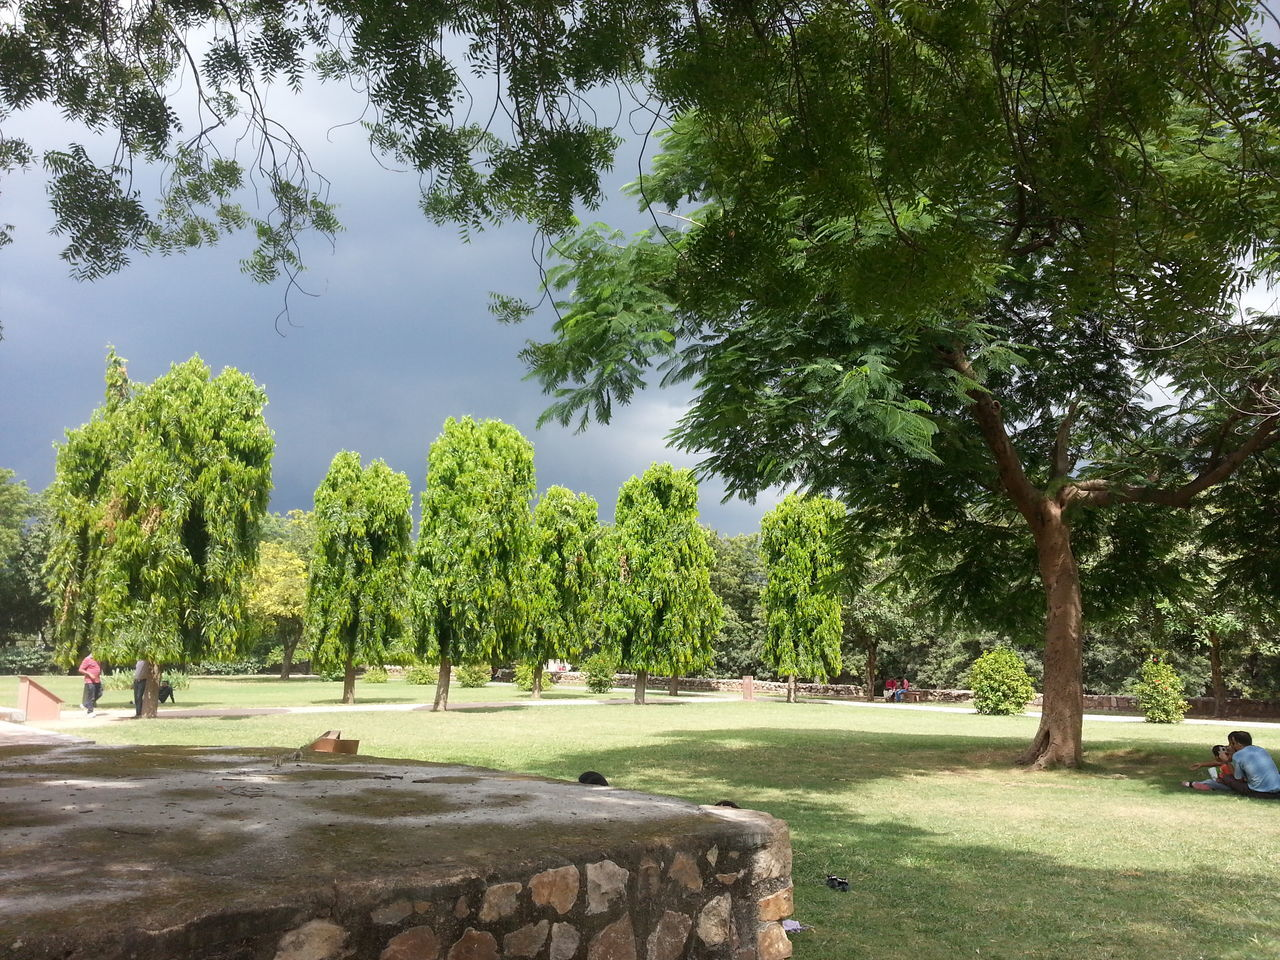 tree, growth, nature, green color, grass, outdoors, day, sky, no people, golf course